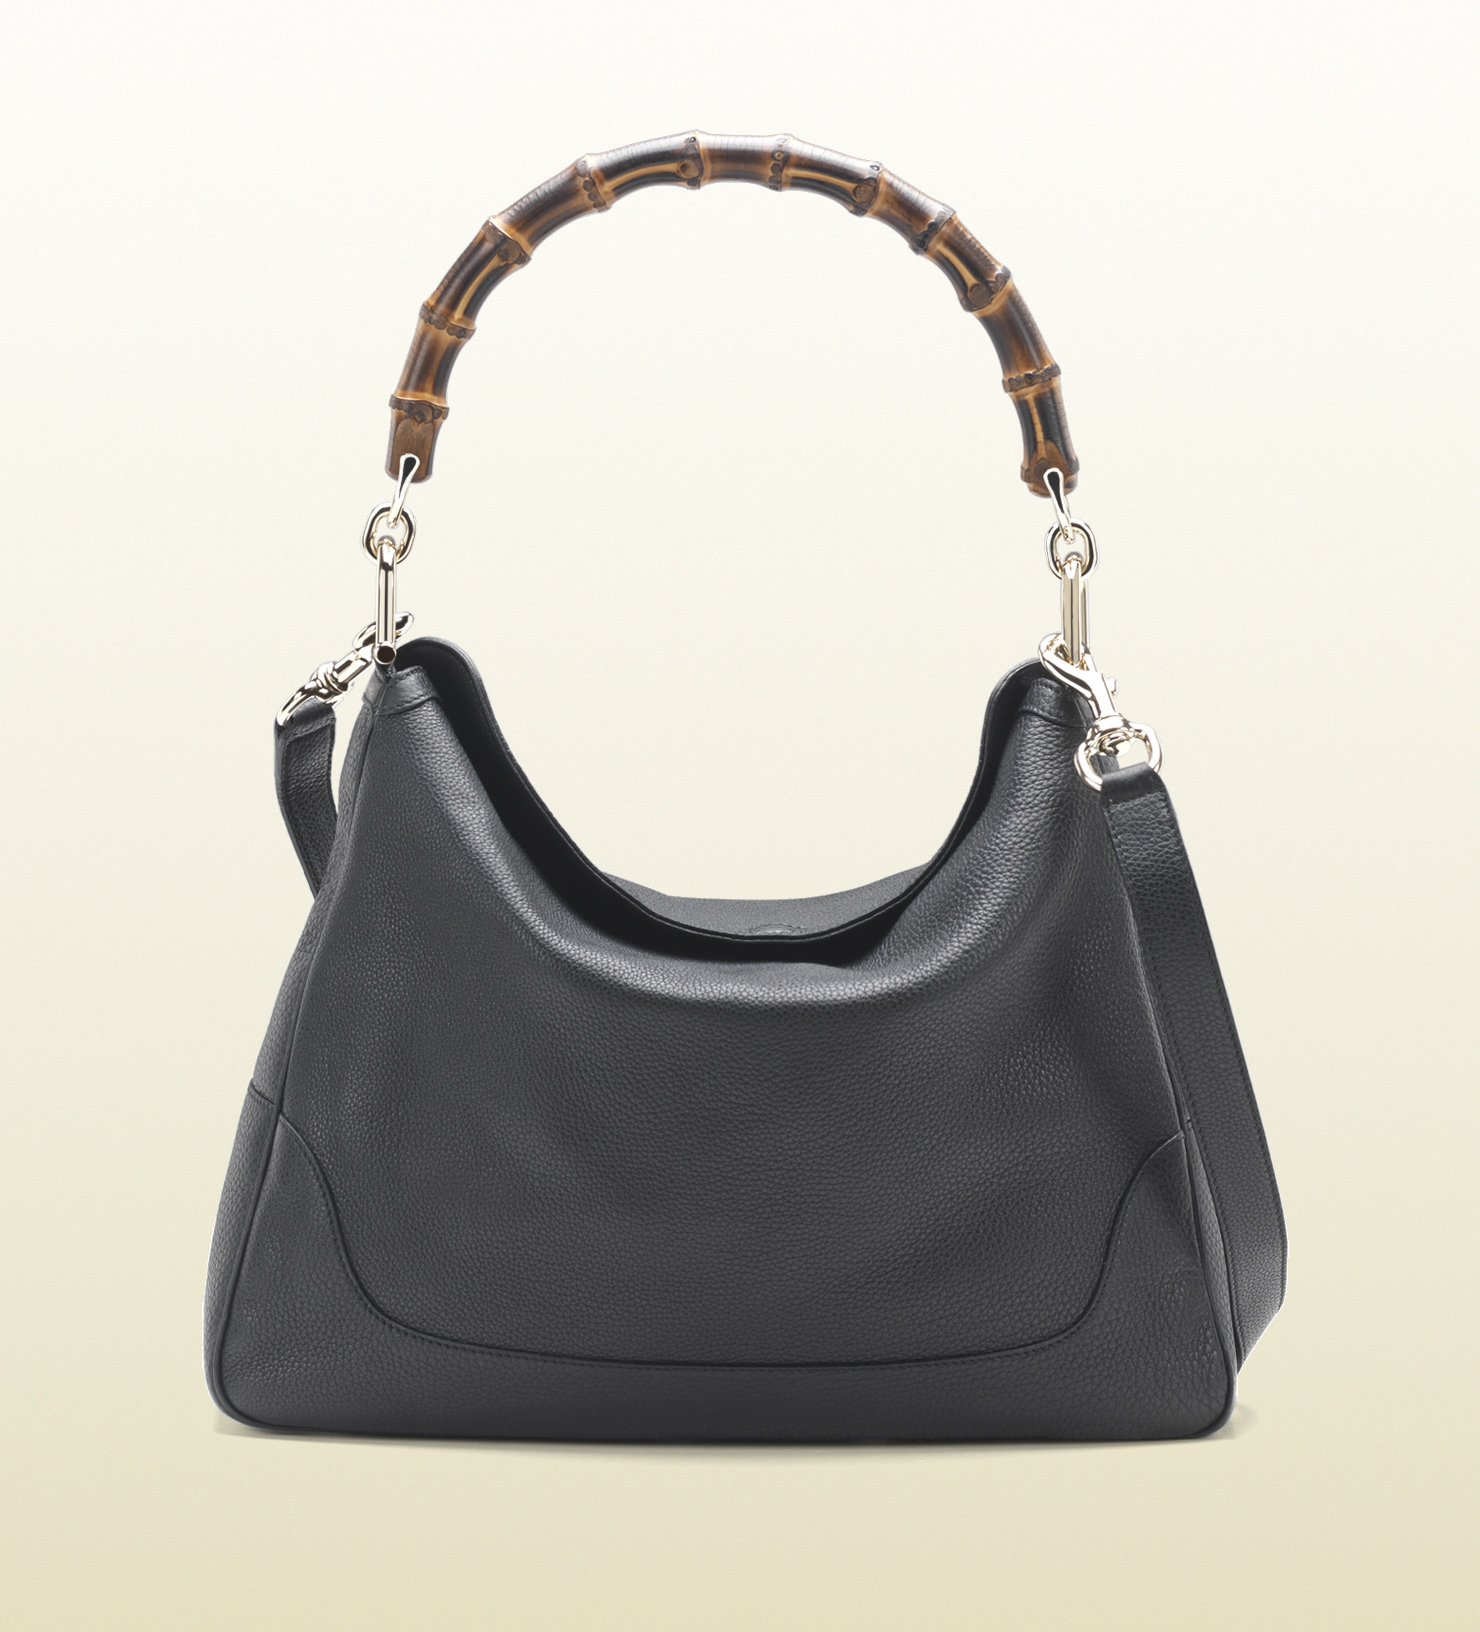 7347a5db5ff7ec Gucci Diana Bamboo Handle Black Leather Shoulder Bag in Gray - Lyst